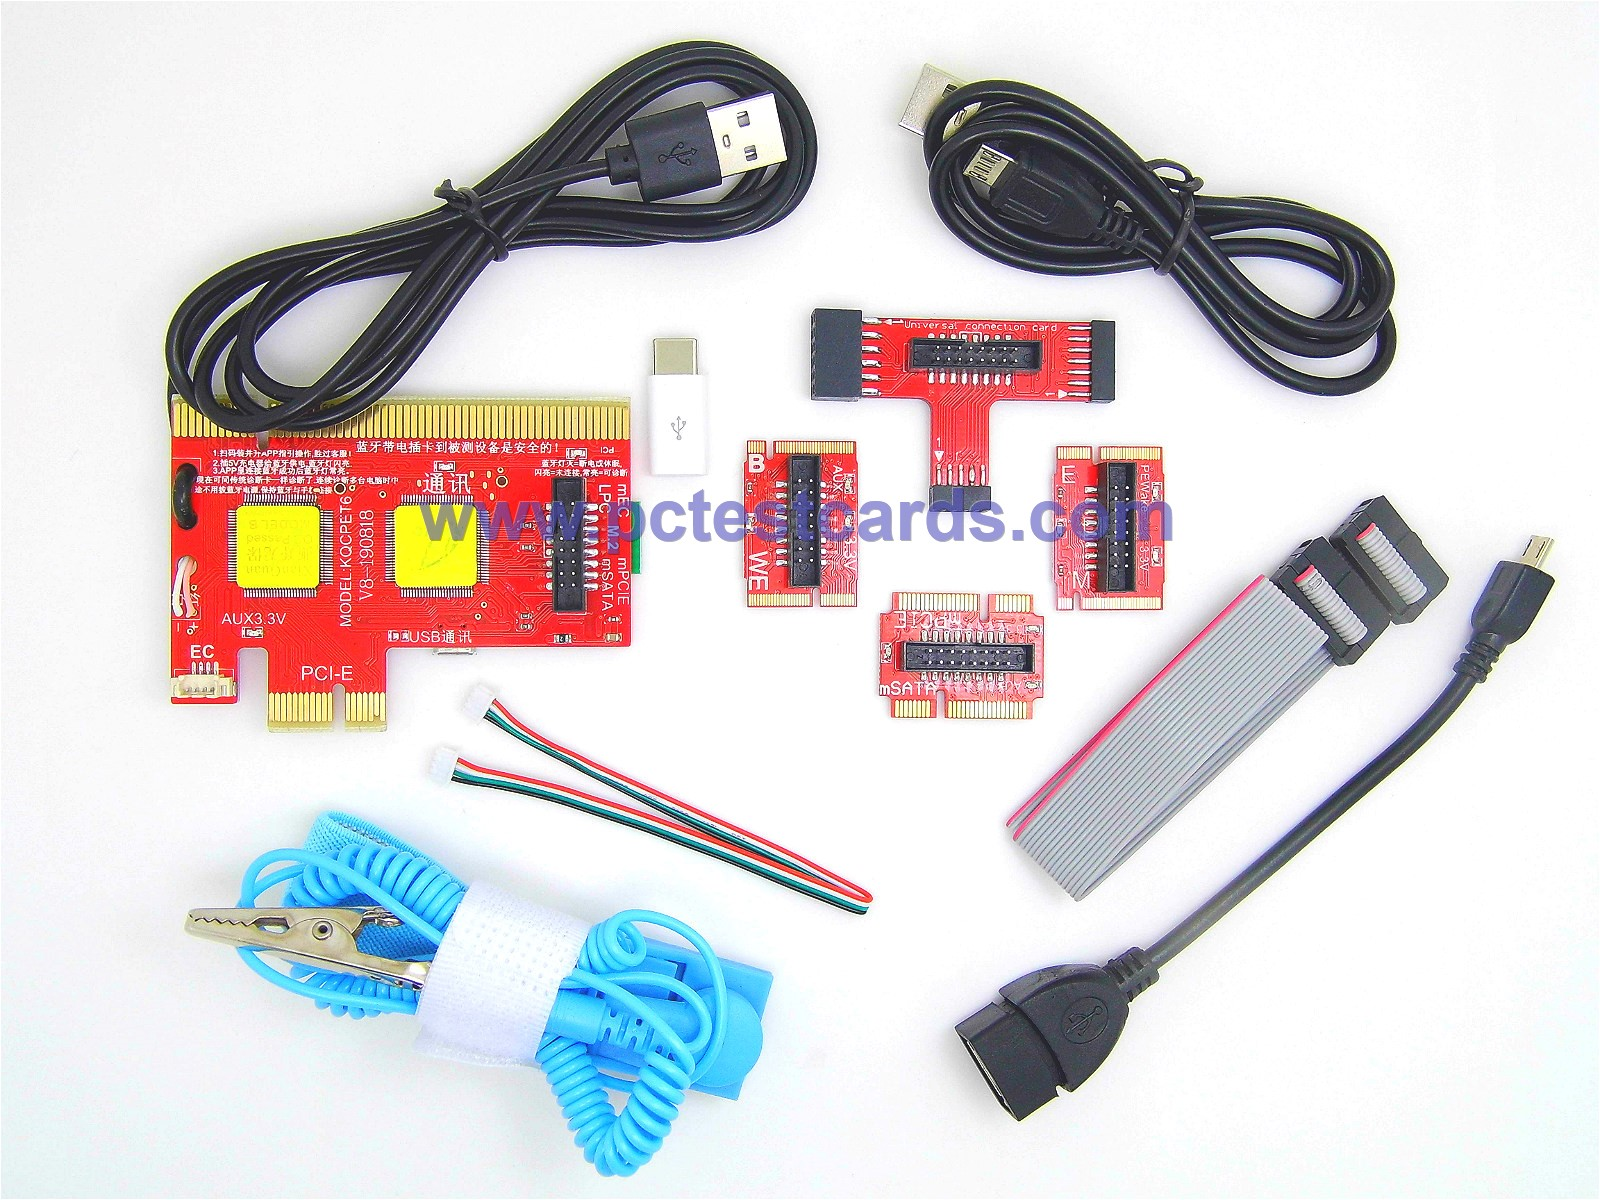 New Latest Complete PC Laptop Android Motherboard Quick Repair PCIe USB M.2 mSATA miniPCIe LPC PCI POST Test Card Kit